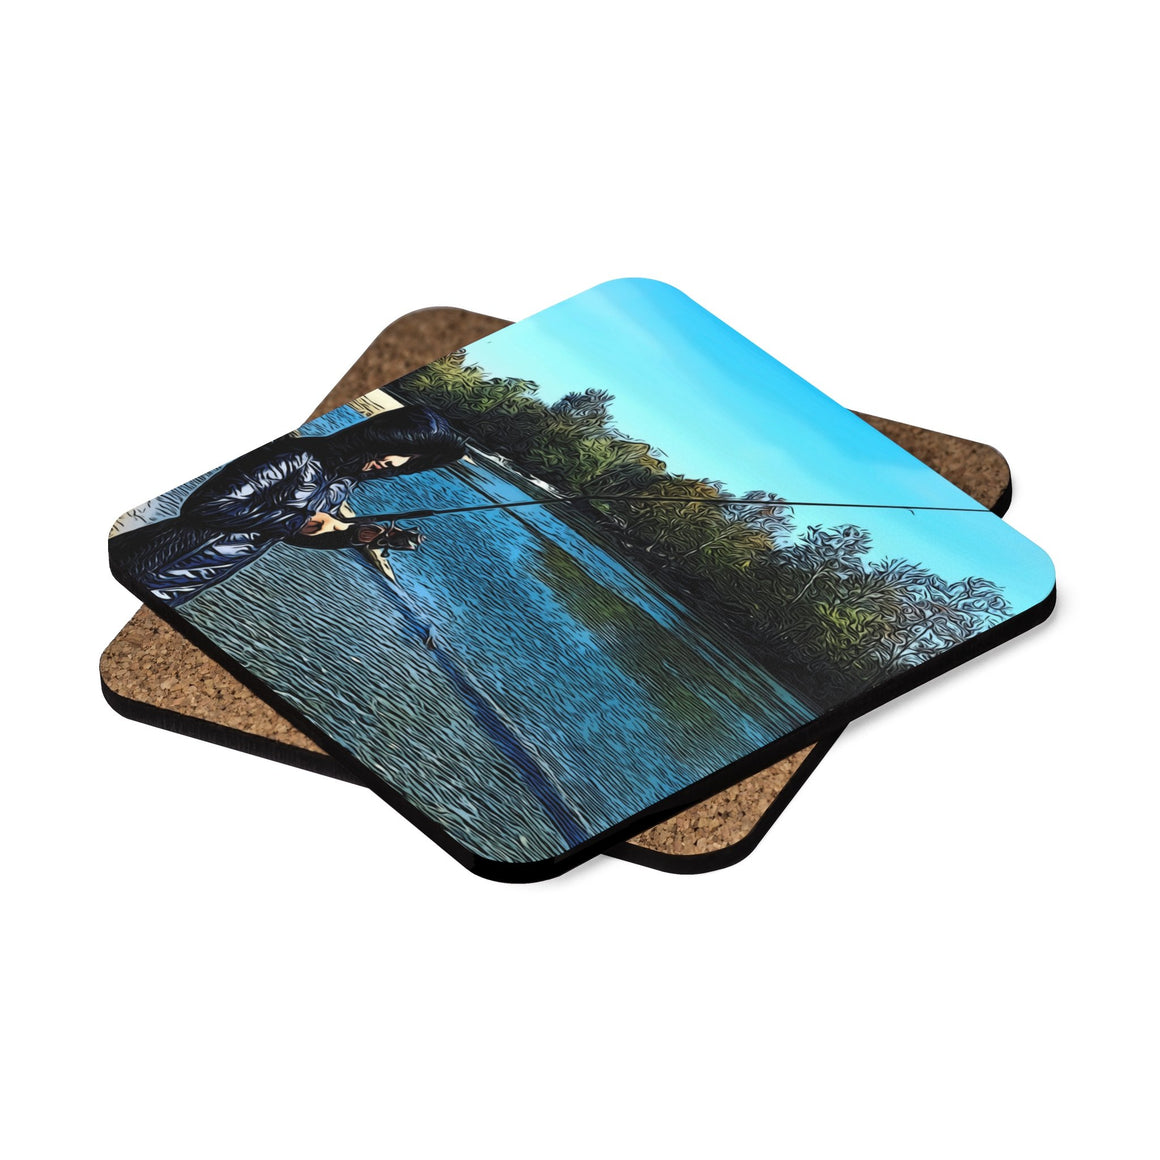 Levi Thang Fishing Design 25 Square Hardboard Coaster Set - 4pcs - I Am A Dreamer